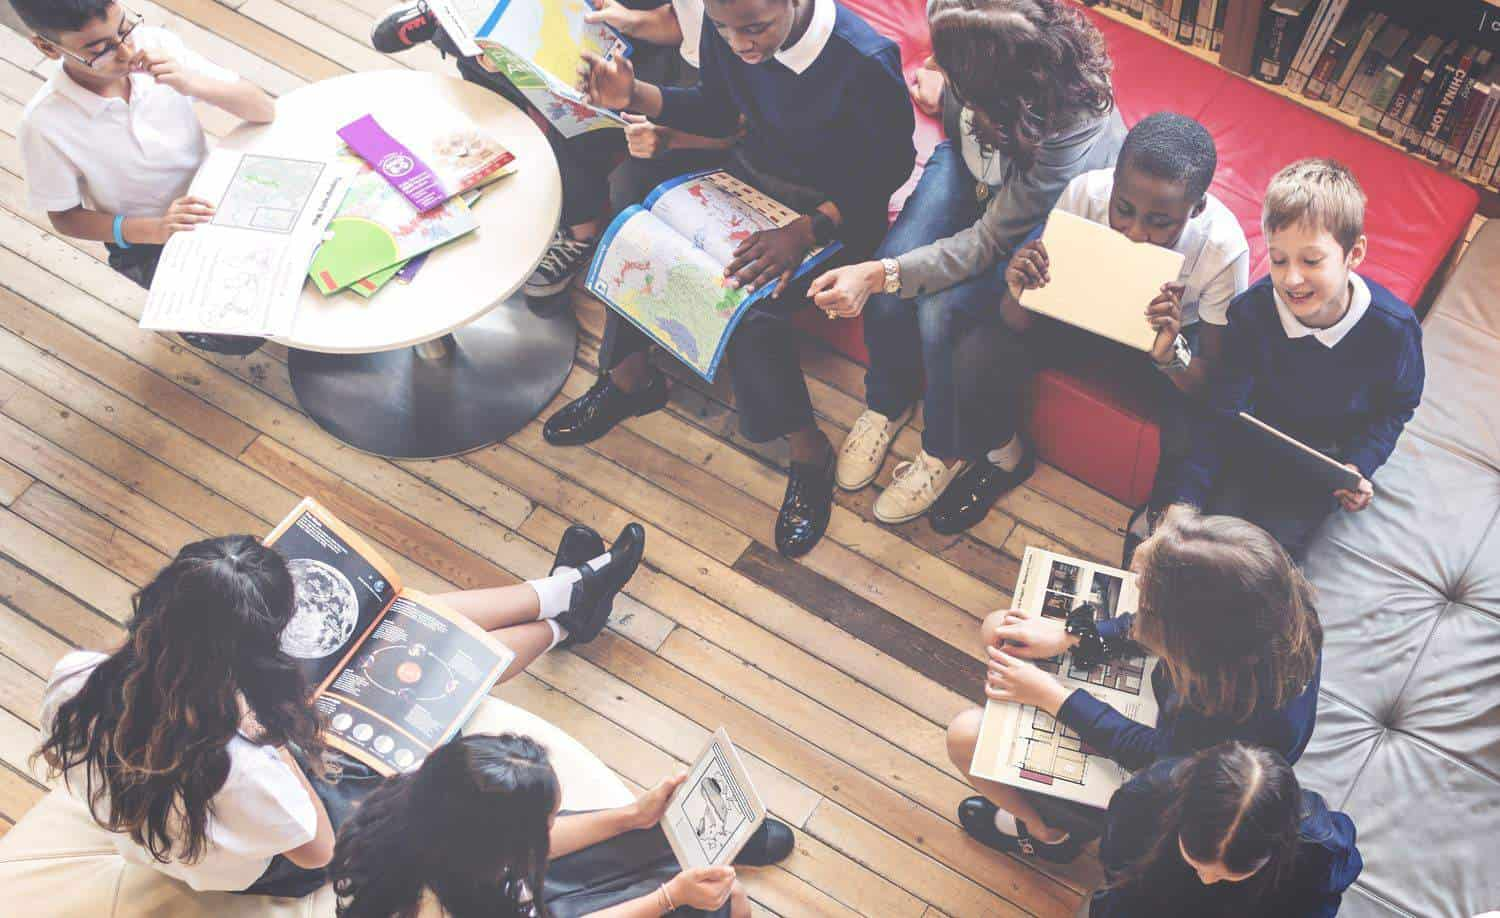 Will the freelance work trend change traditional education